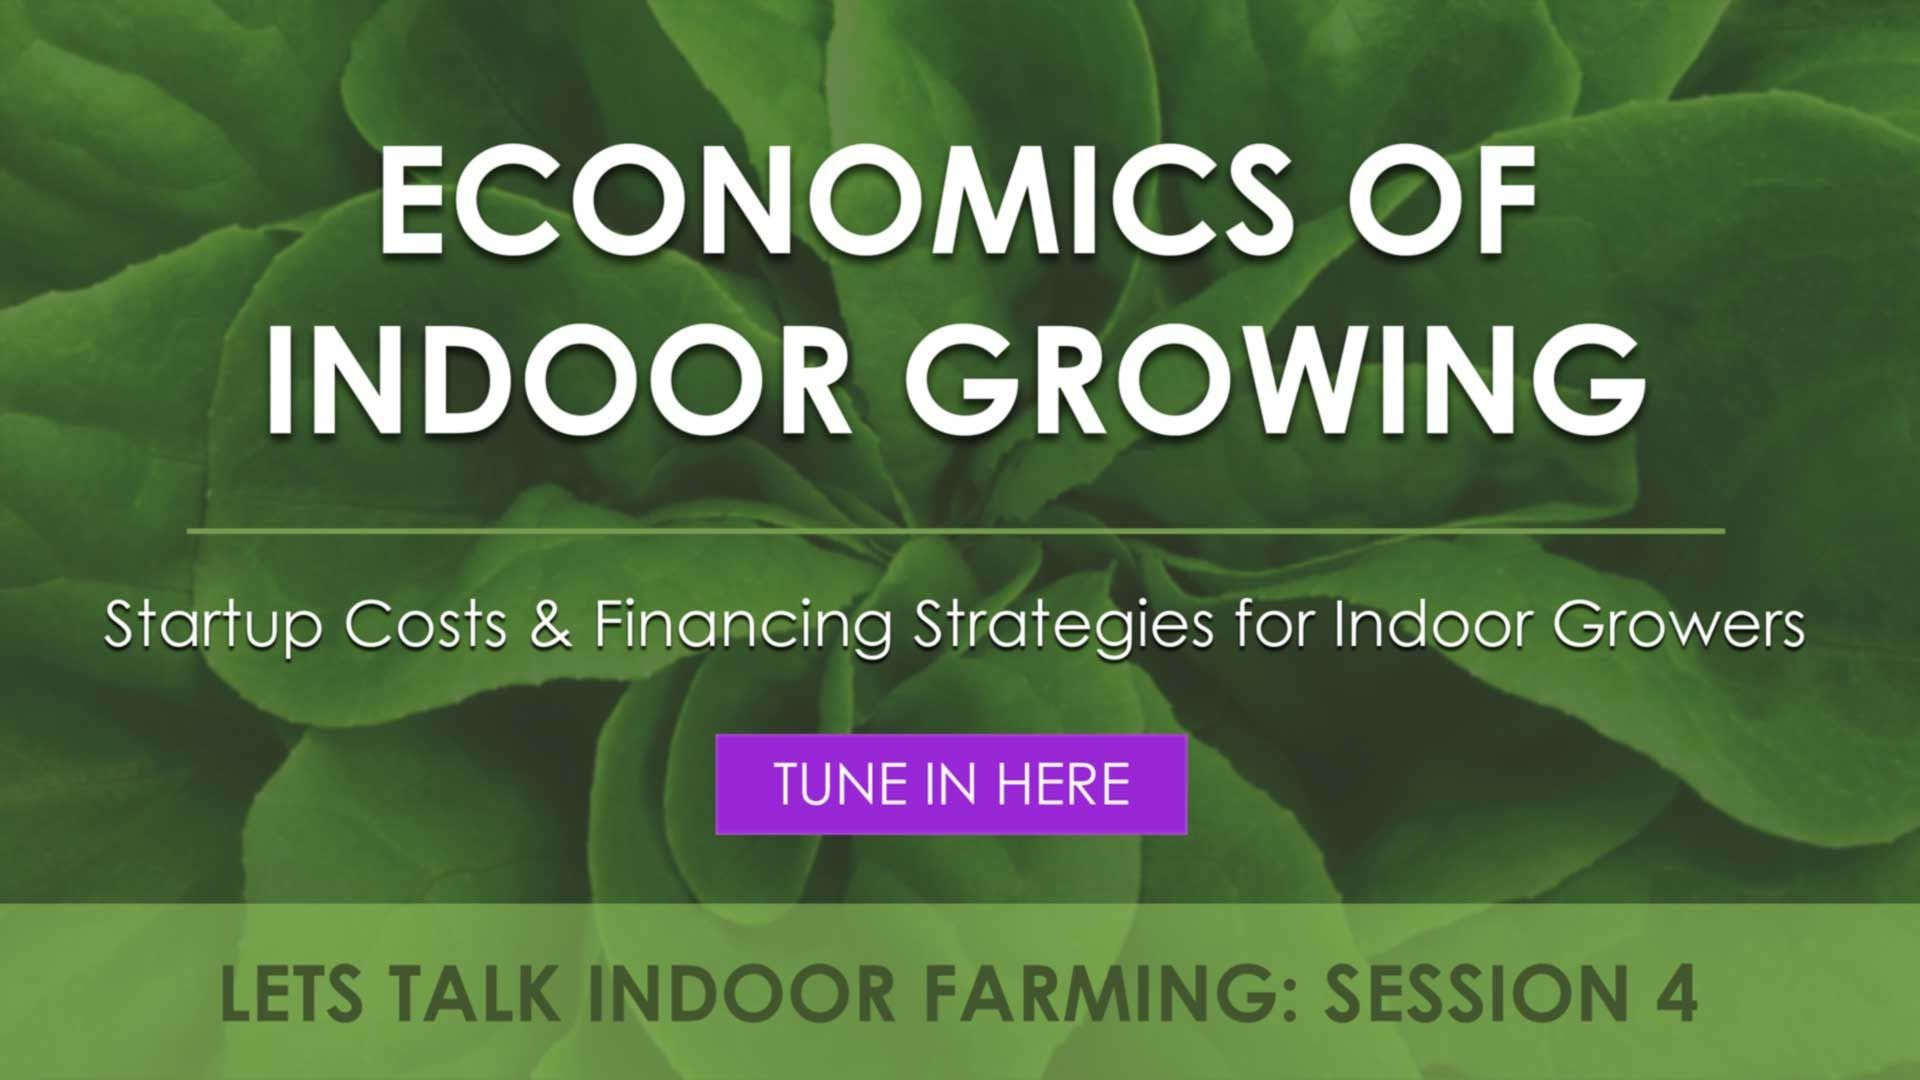 Startup Costs and Financing Strategies Let's Talk Indoor